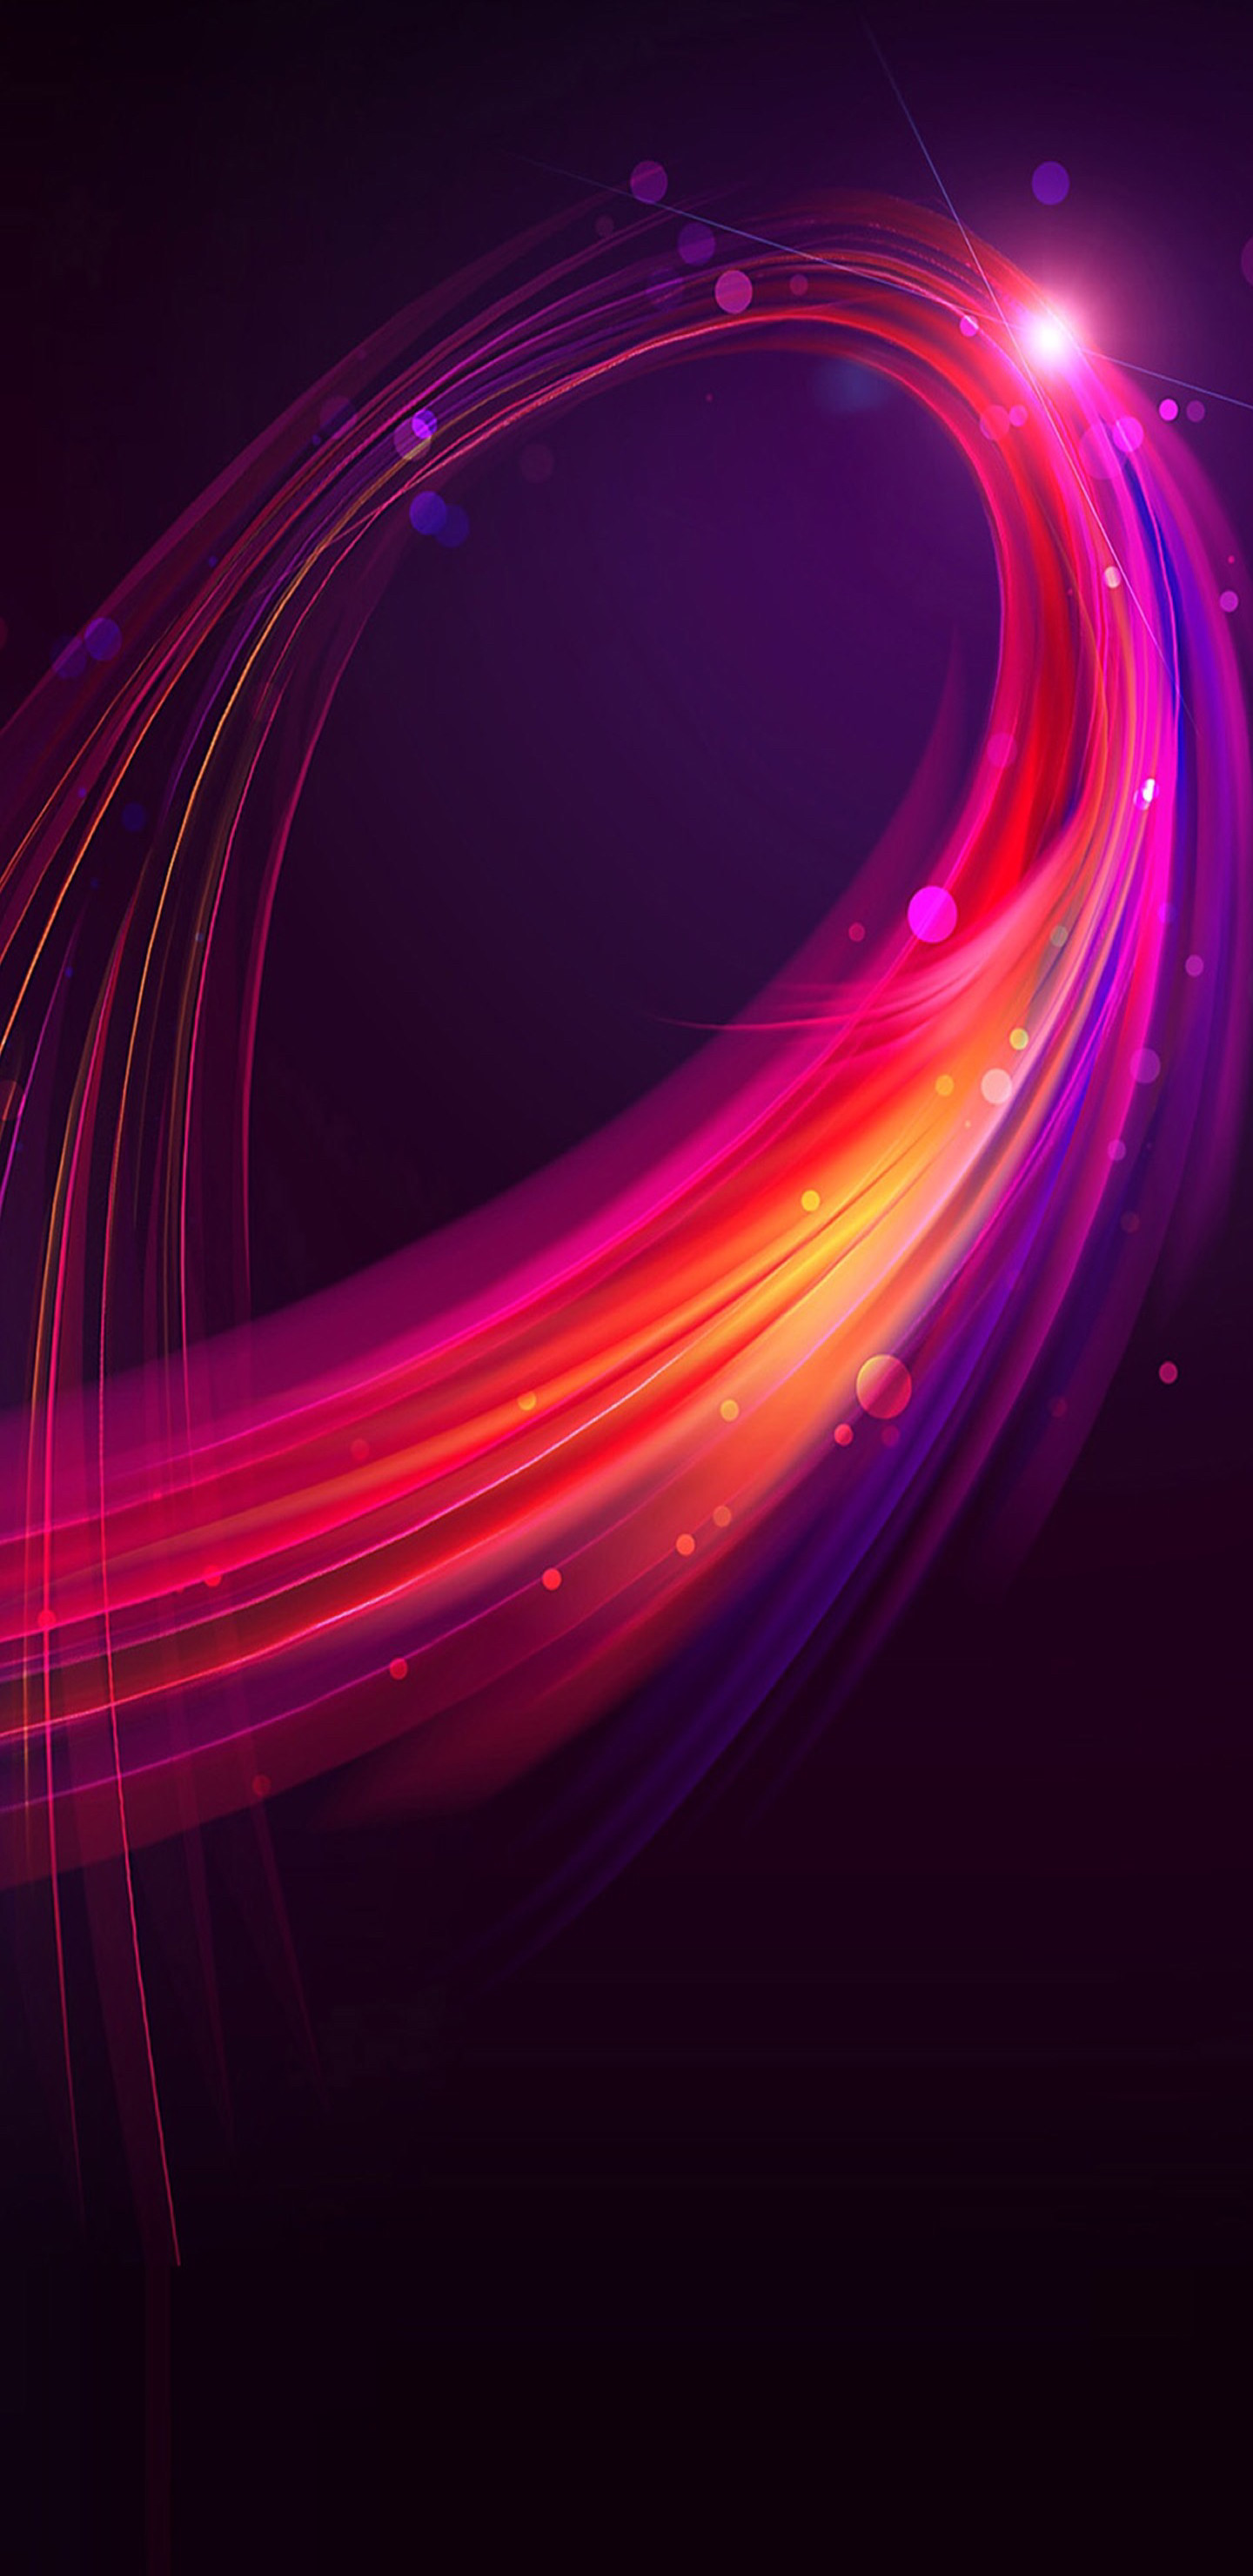 1440x2960 Blue, red, purple, minimal, abstract, wallpaper, galaxy, clean,